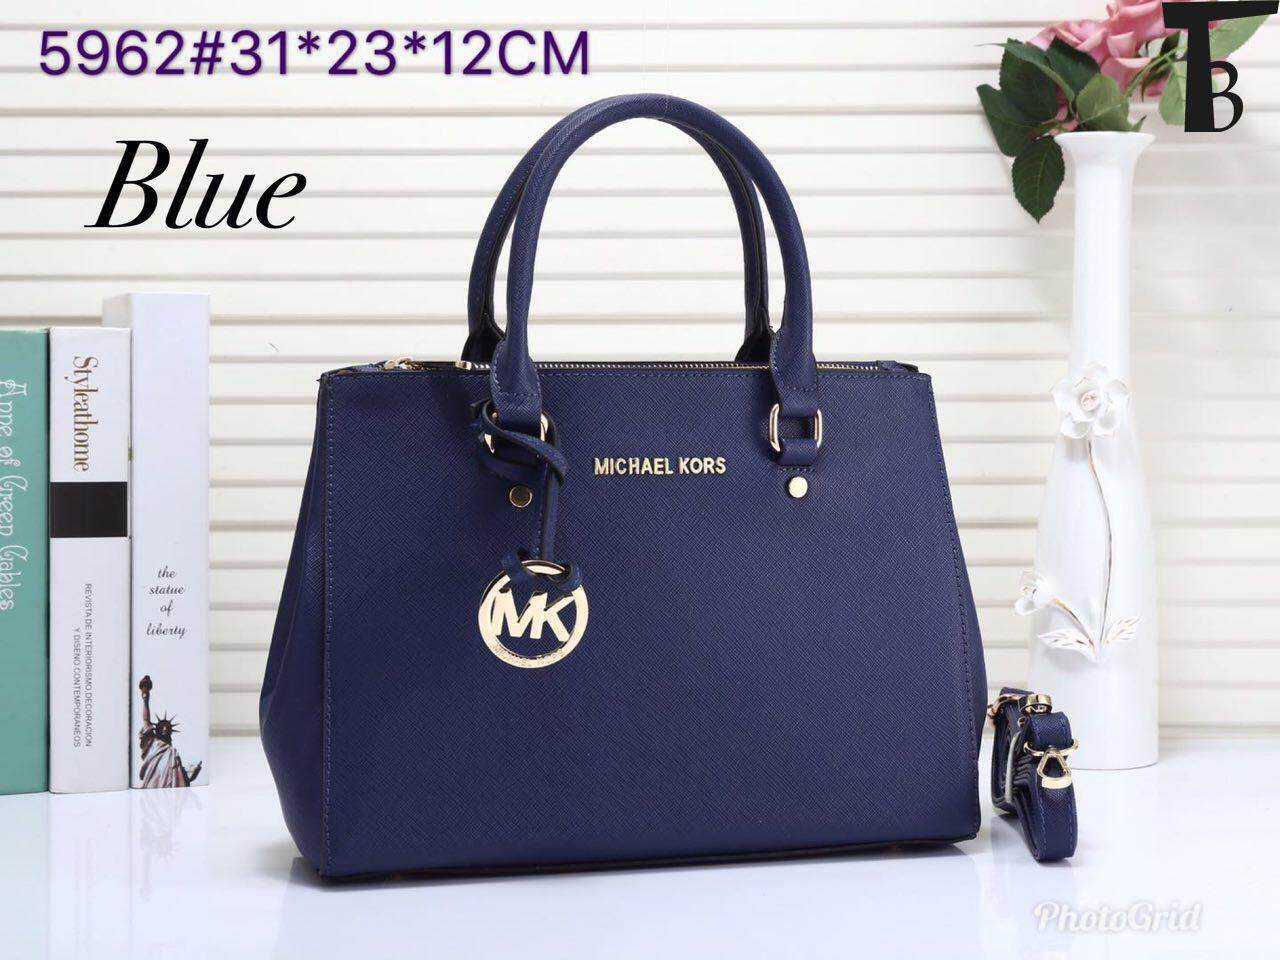 171ce56e3a42 11.11 Premium Quality MK Saffiano Bag Fashion Michael Kors Tote Sling Bag